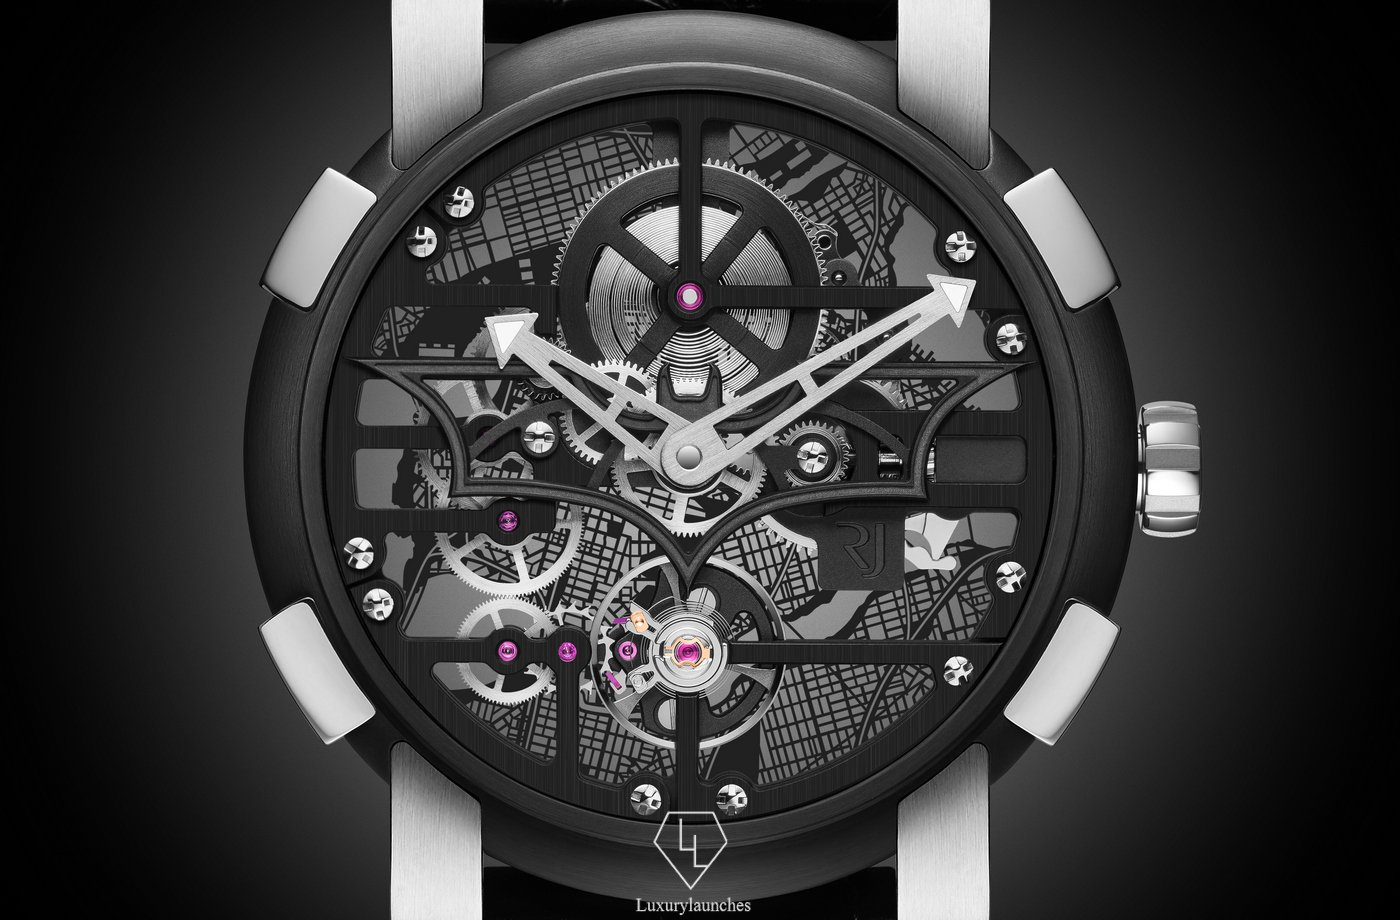 Romain Jerome Introduces Limited Edition Batman Watch With